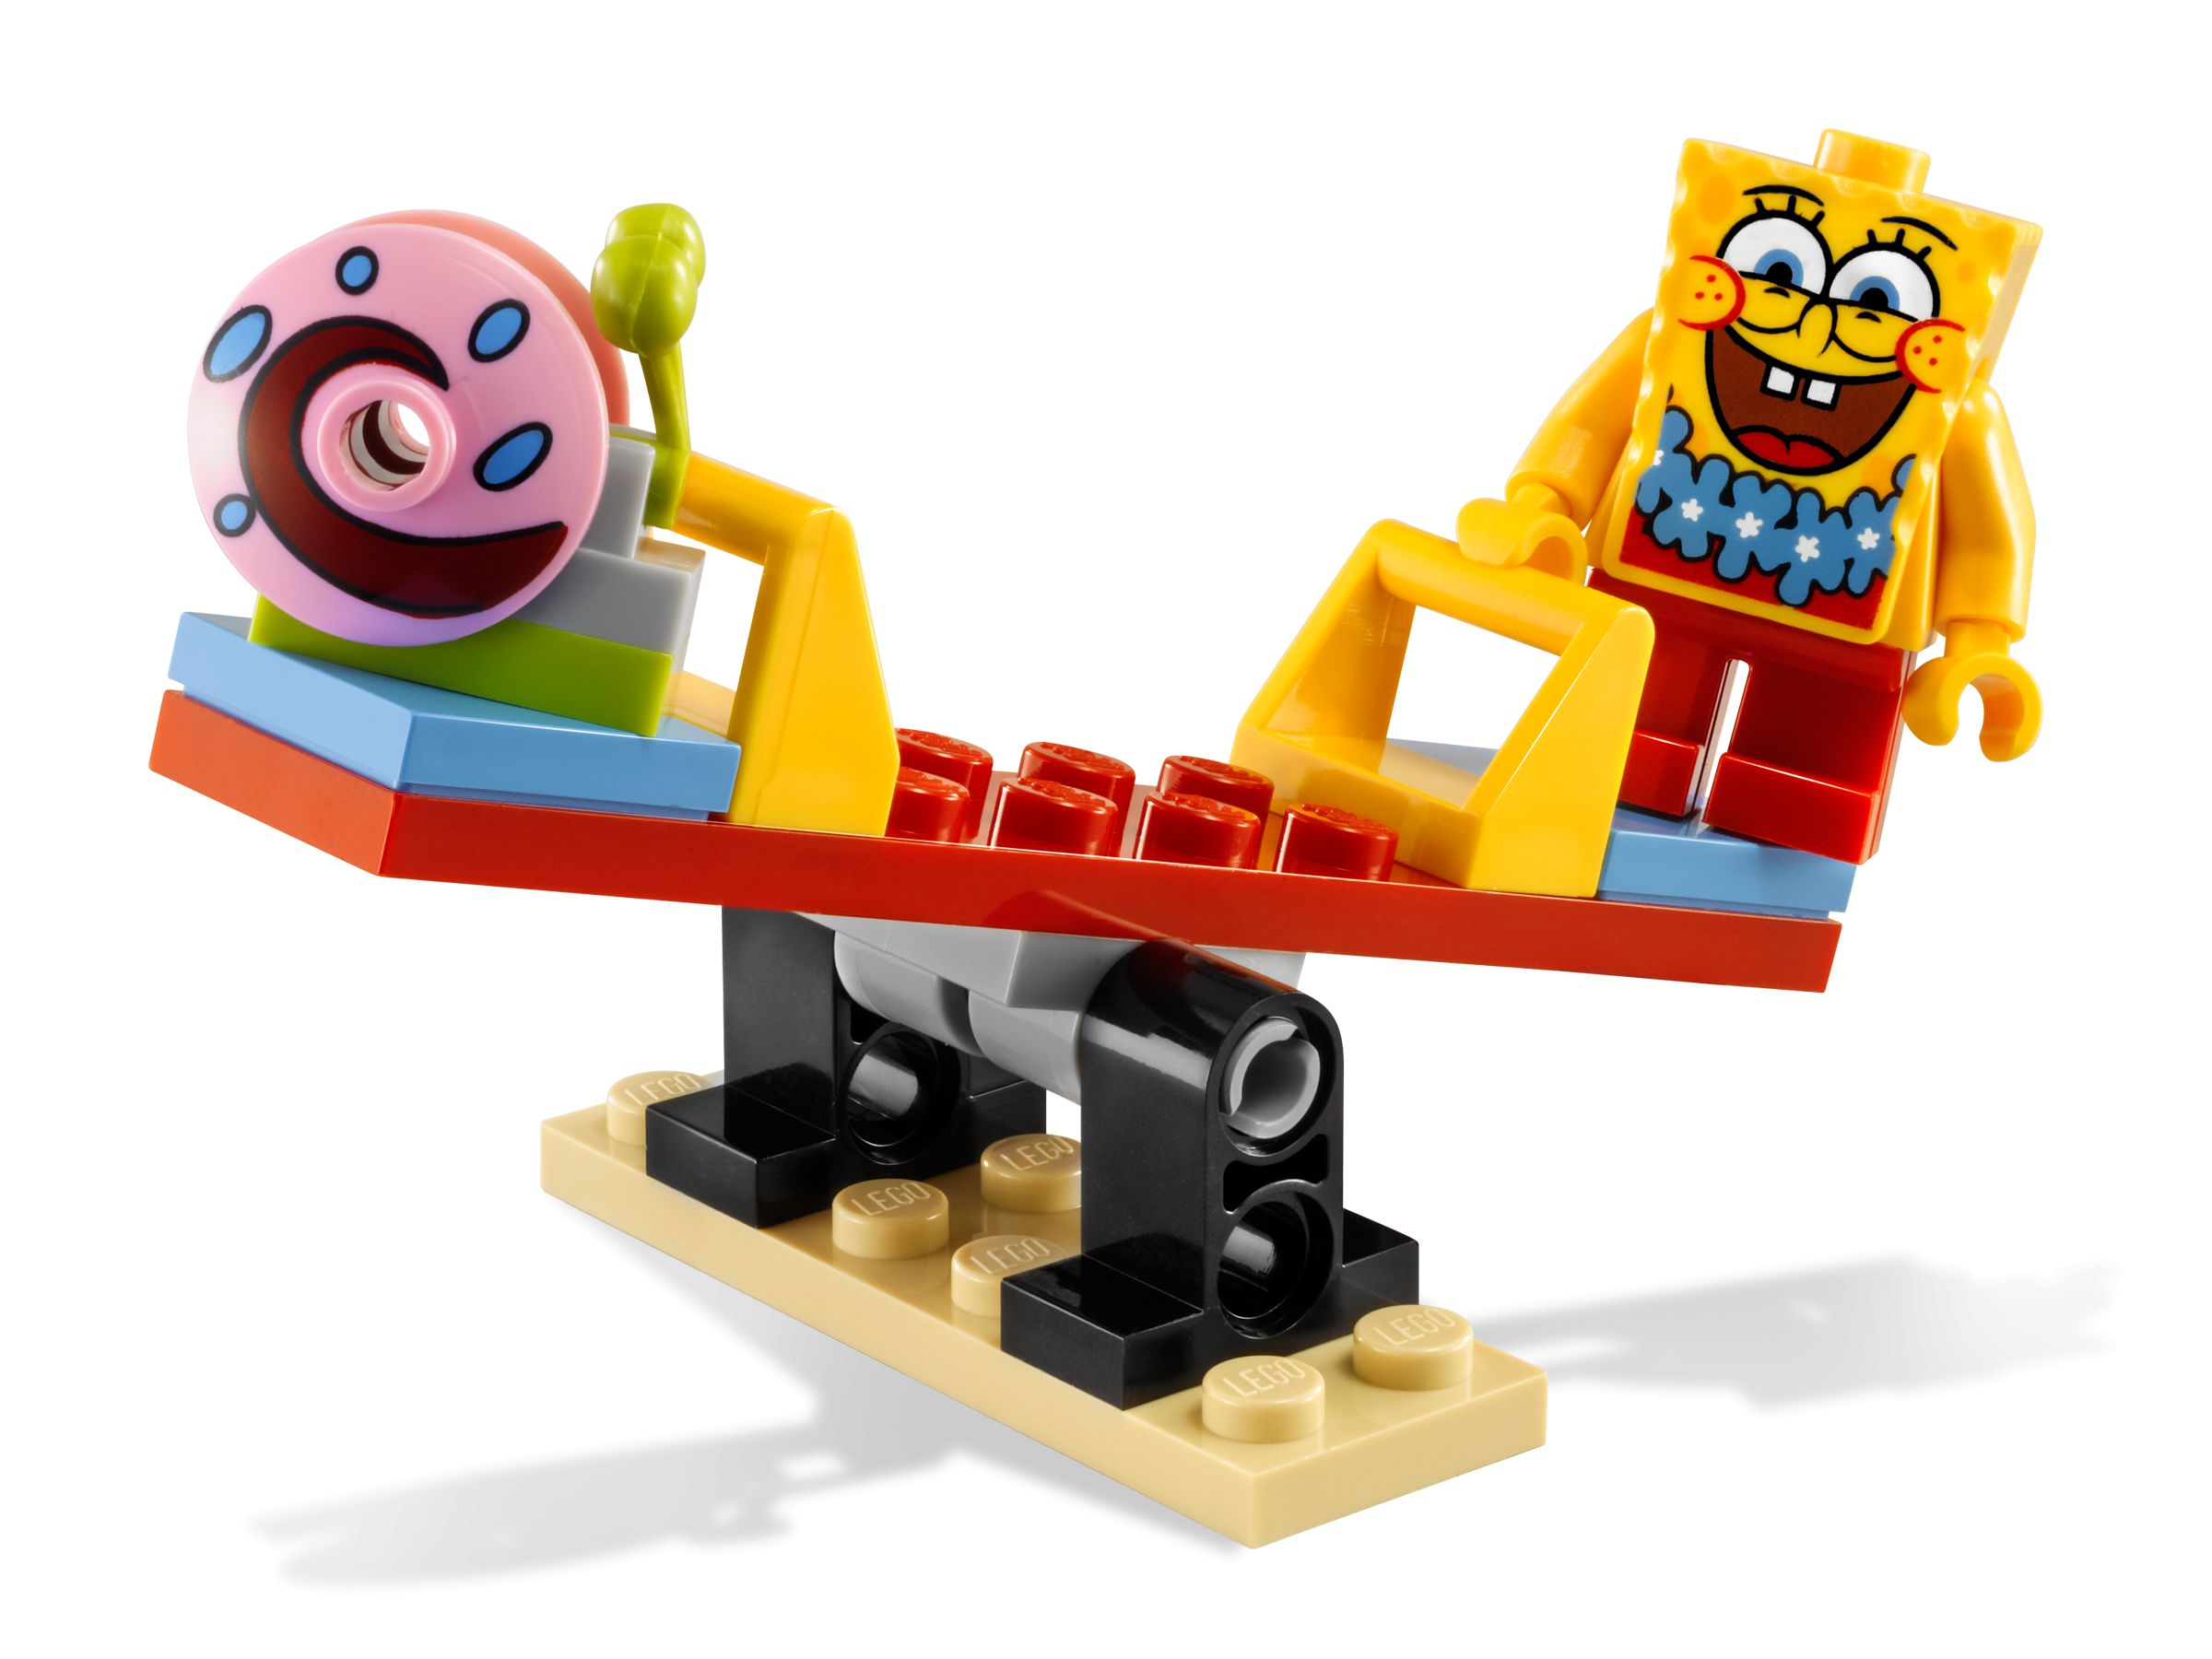 LEGO SpongeBob SquarePants 3818 Bikini Bottom Undersea Party LEGO_3818_alt6.jpg